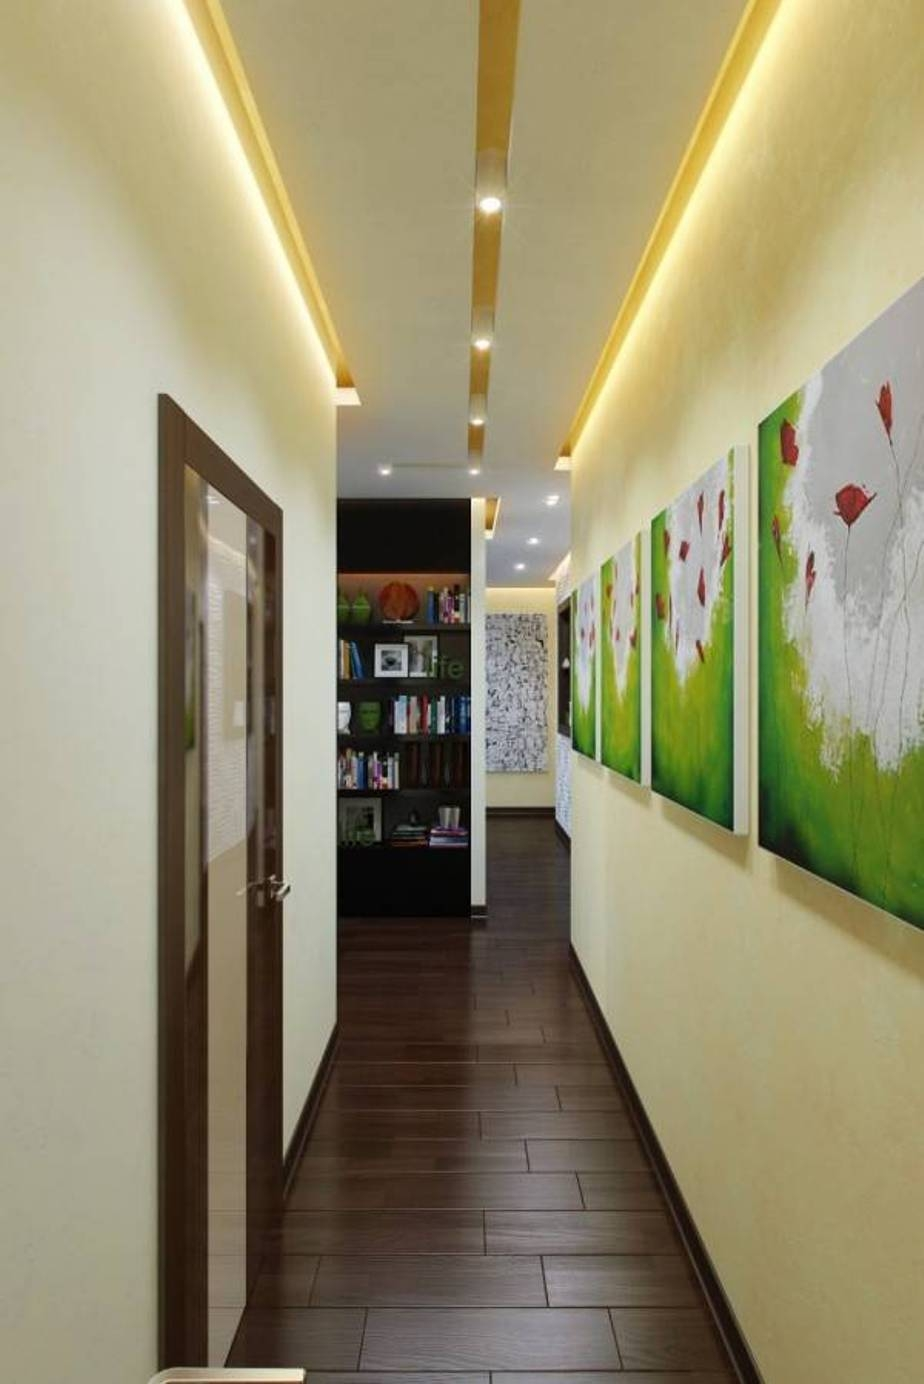 Bright Hallway Colour Ideas With Led Lighting And Wall Art Gallery Regarding Most Popular Wall Art Ideas For Hallways (View 13 of 20)